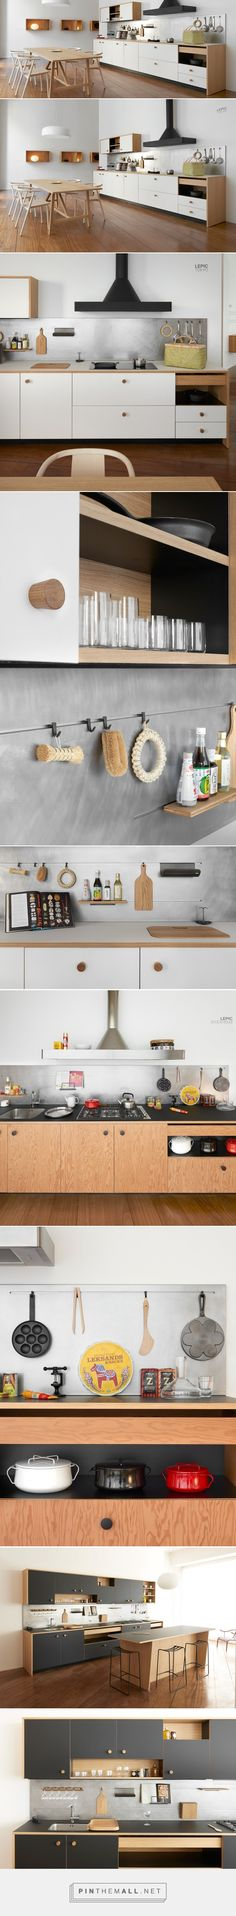 jasper morrison unveils first kitchen design with 'LEPIC' for schiffini - created via https://pinthemall.net